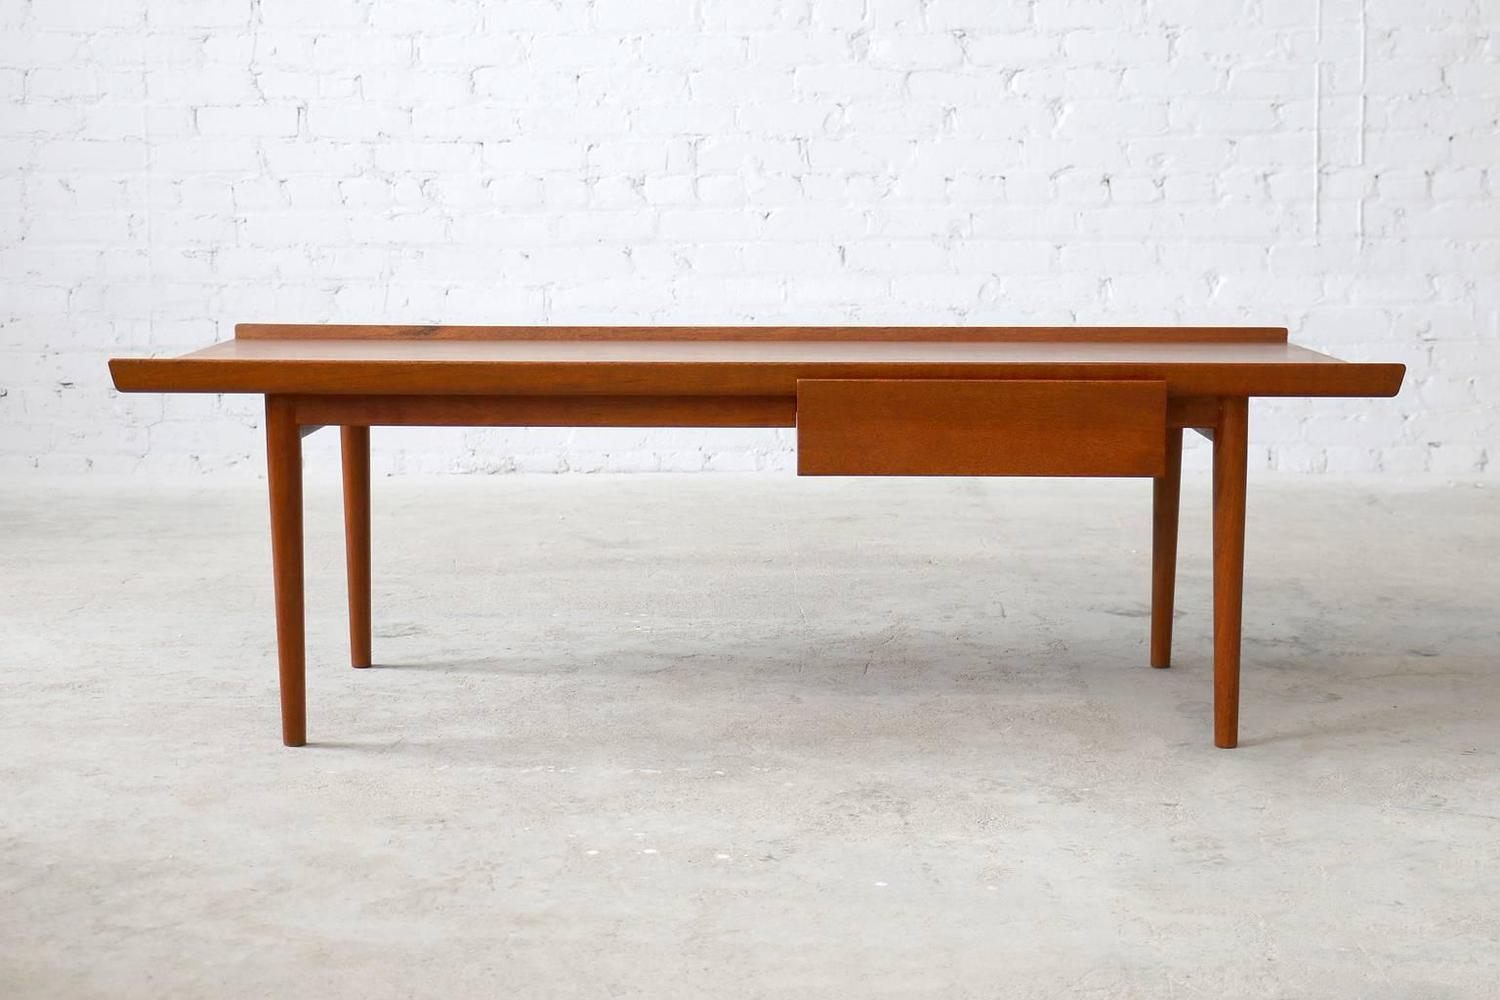 Finn juhl rare niels vodder teak vintage danish modern coffee table for sale at 1stdibs Modern teak coffee table